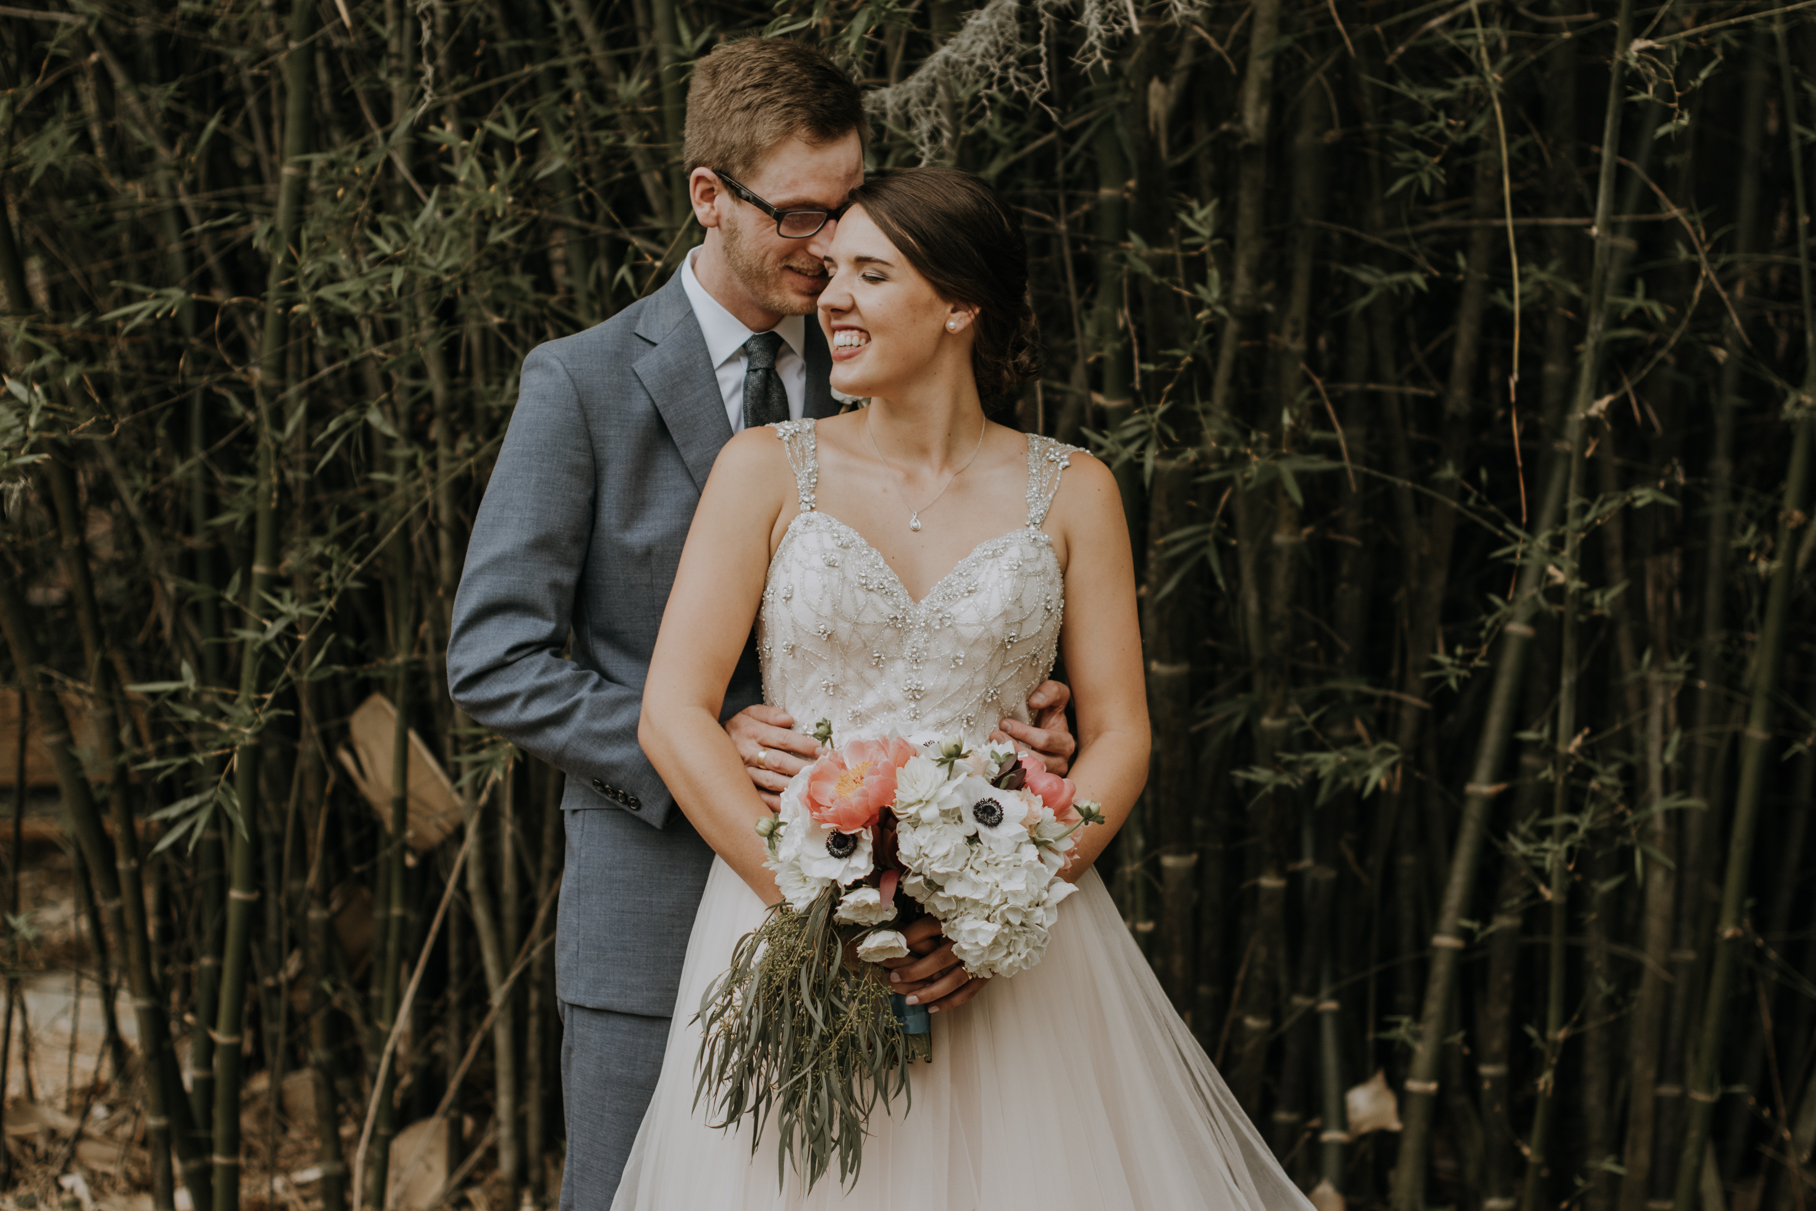 freehearted film co   tampa wedding photo and film   winter park wedding